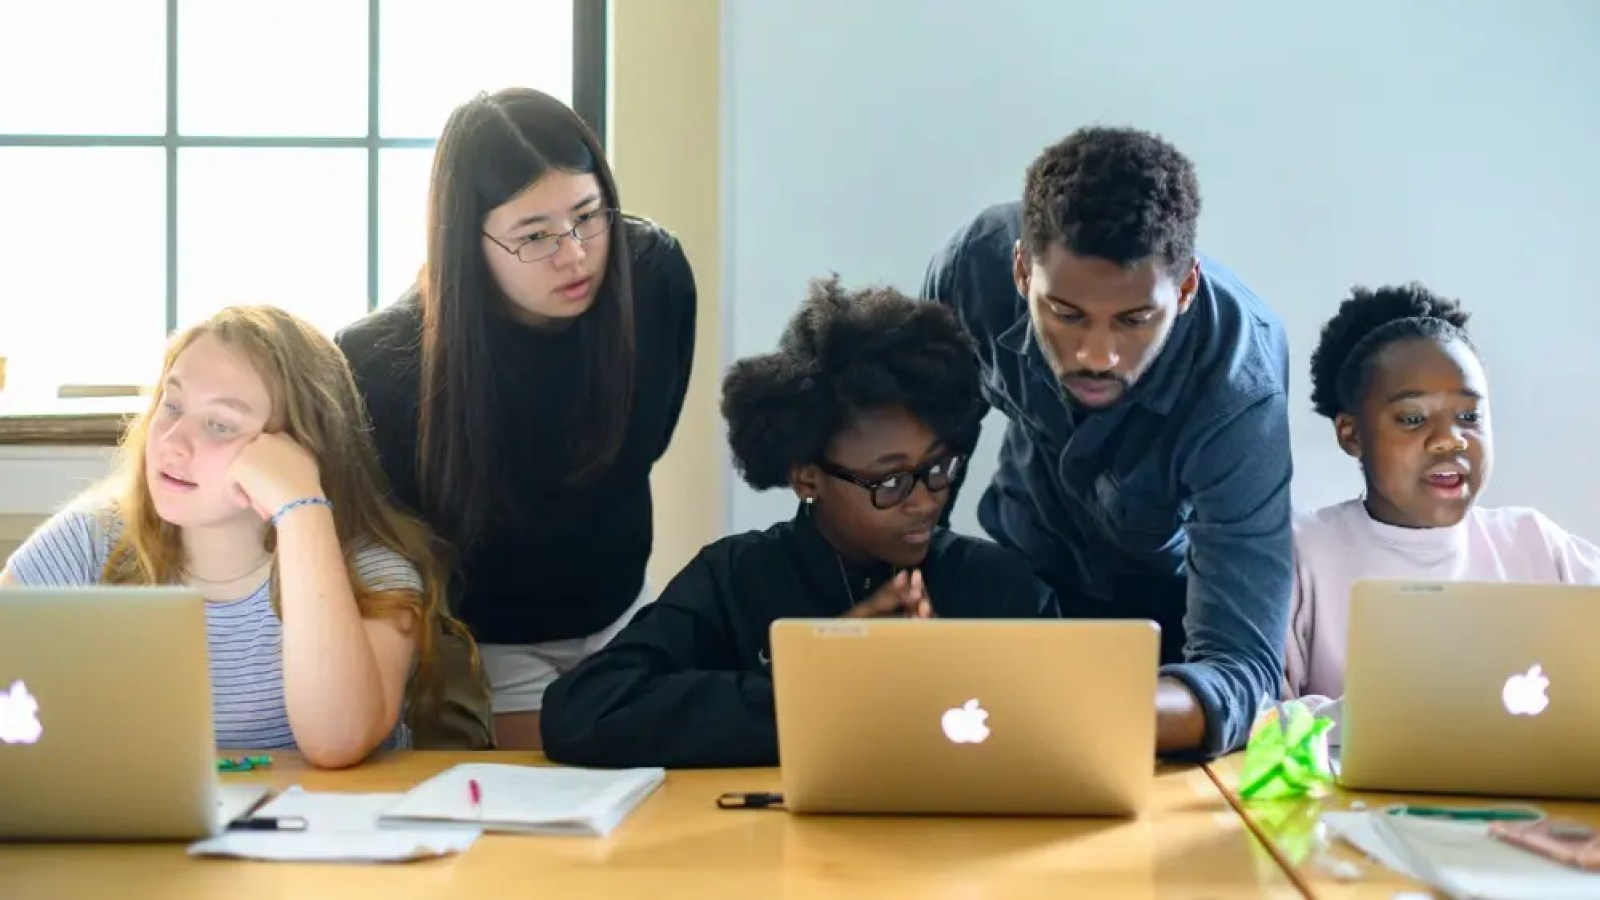 Three young girls learning how to code with two mentors watching over them